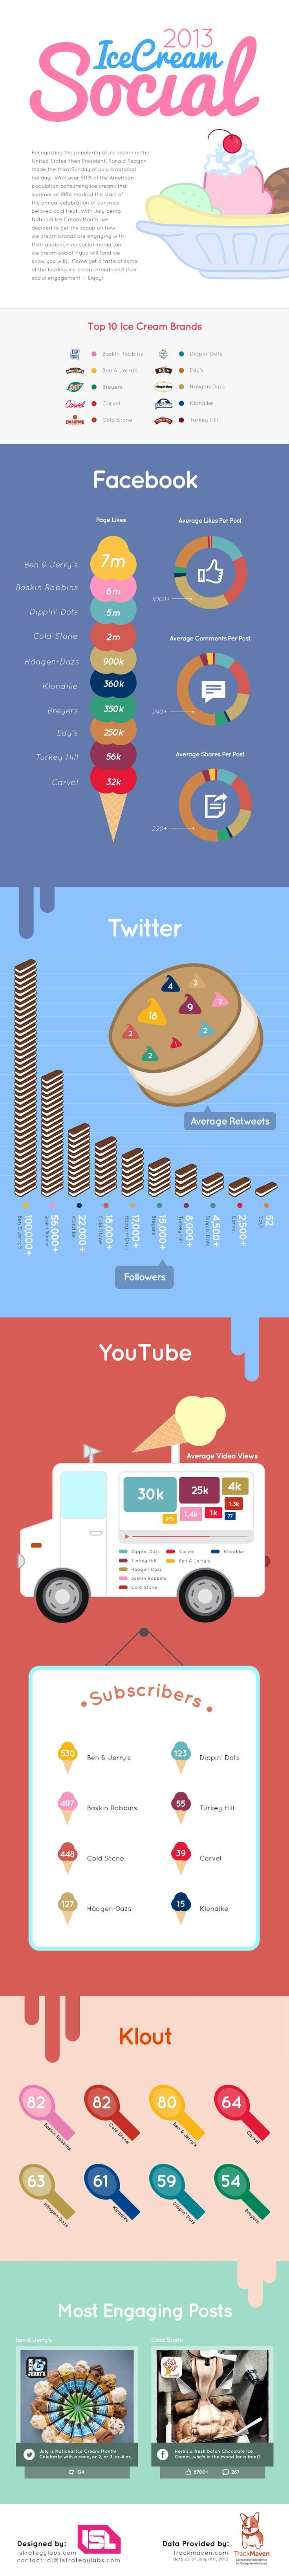 Food infographic  10 Best Ice Cream Brands According To Social Media [Infographic]